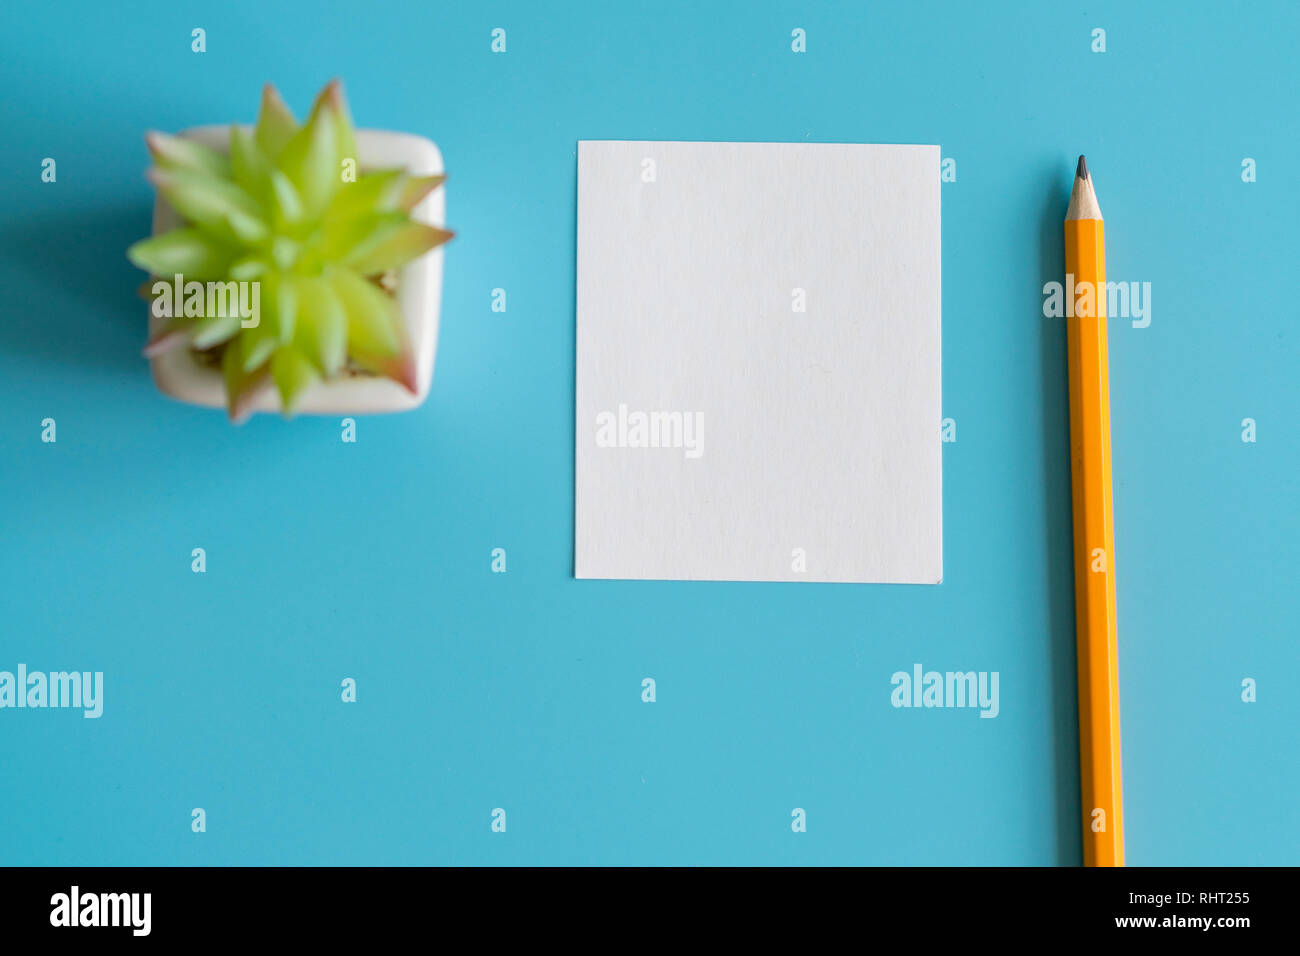 Cactus Draw Stock Photos Cactus Draw Stock Images Page 2 Alamy